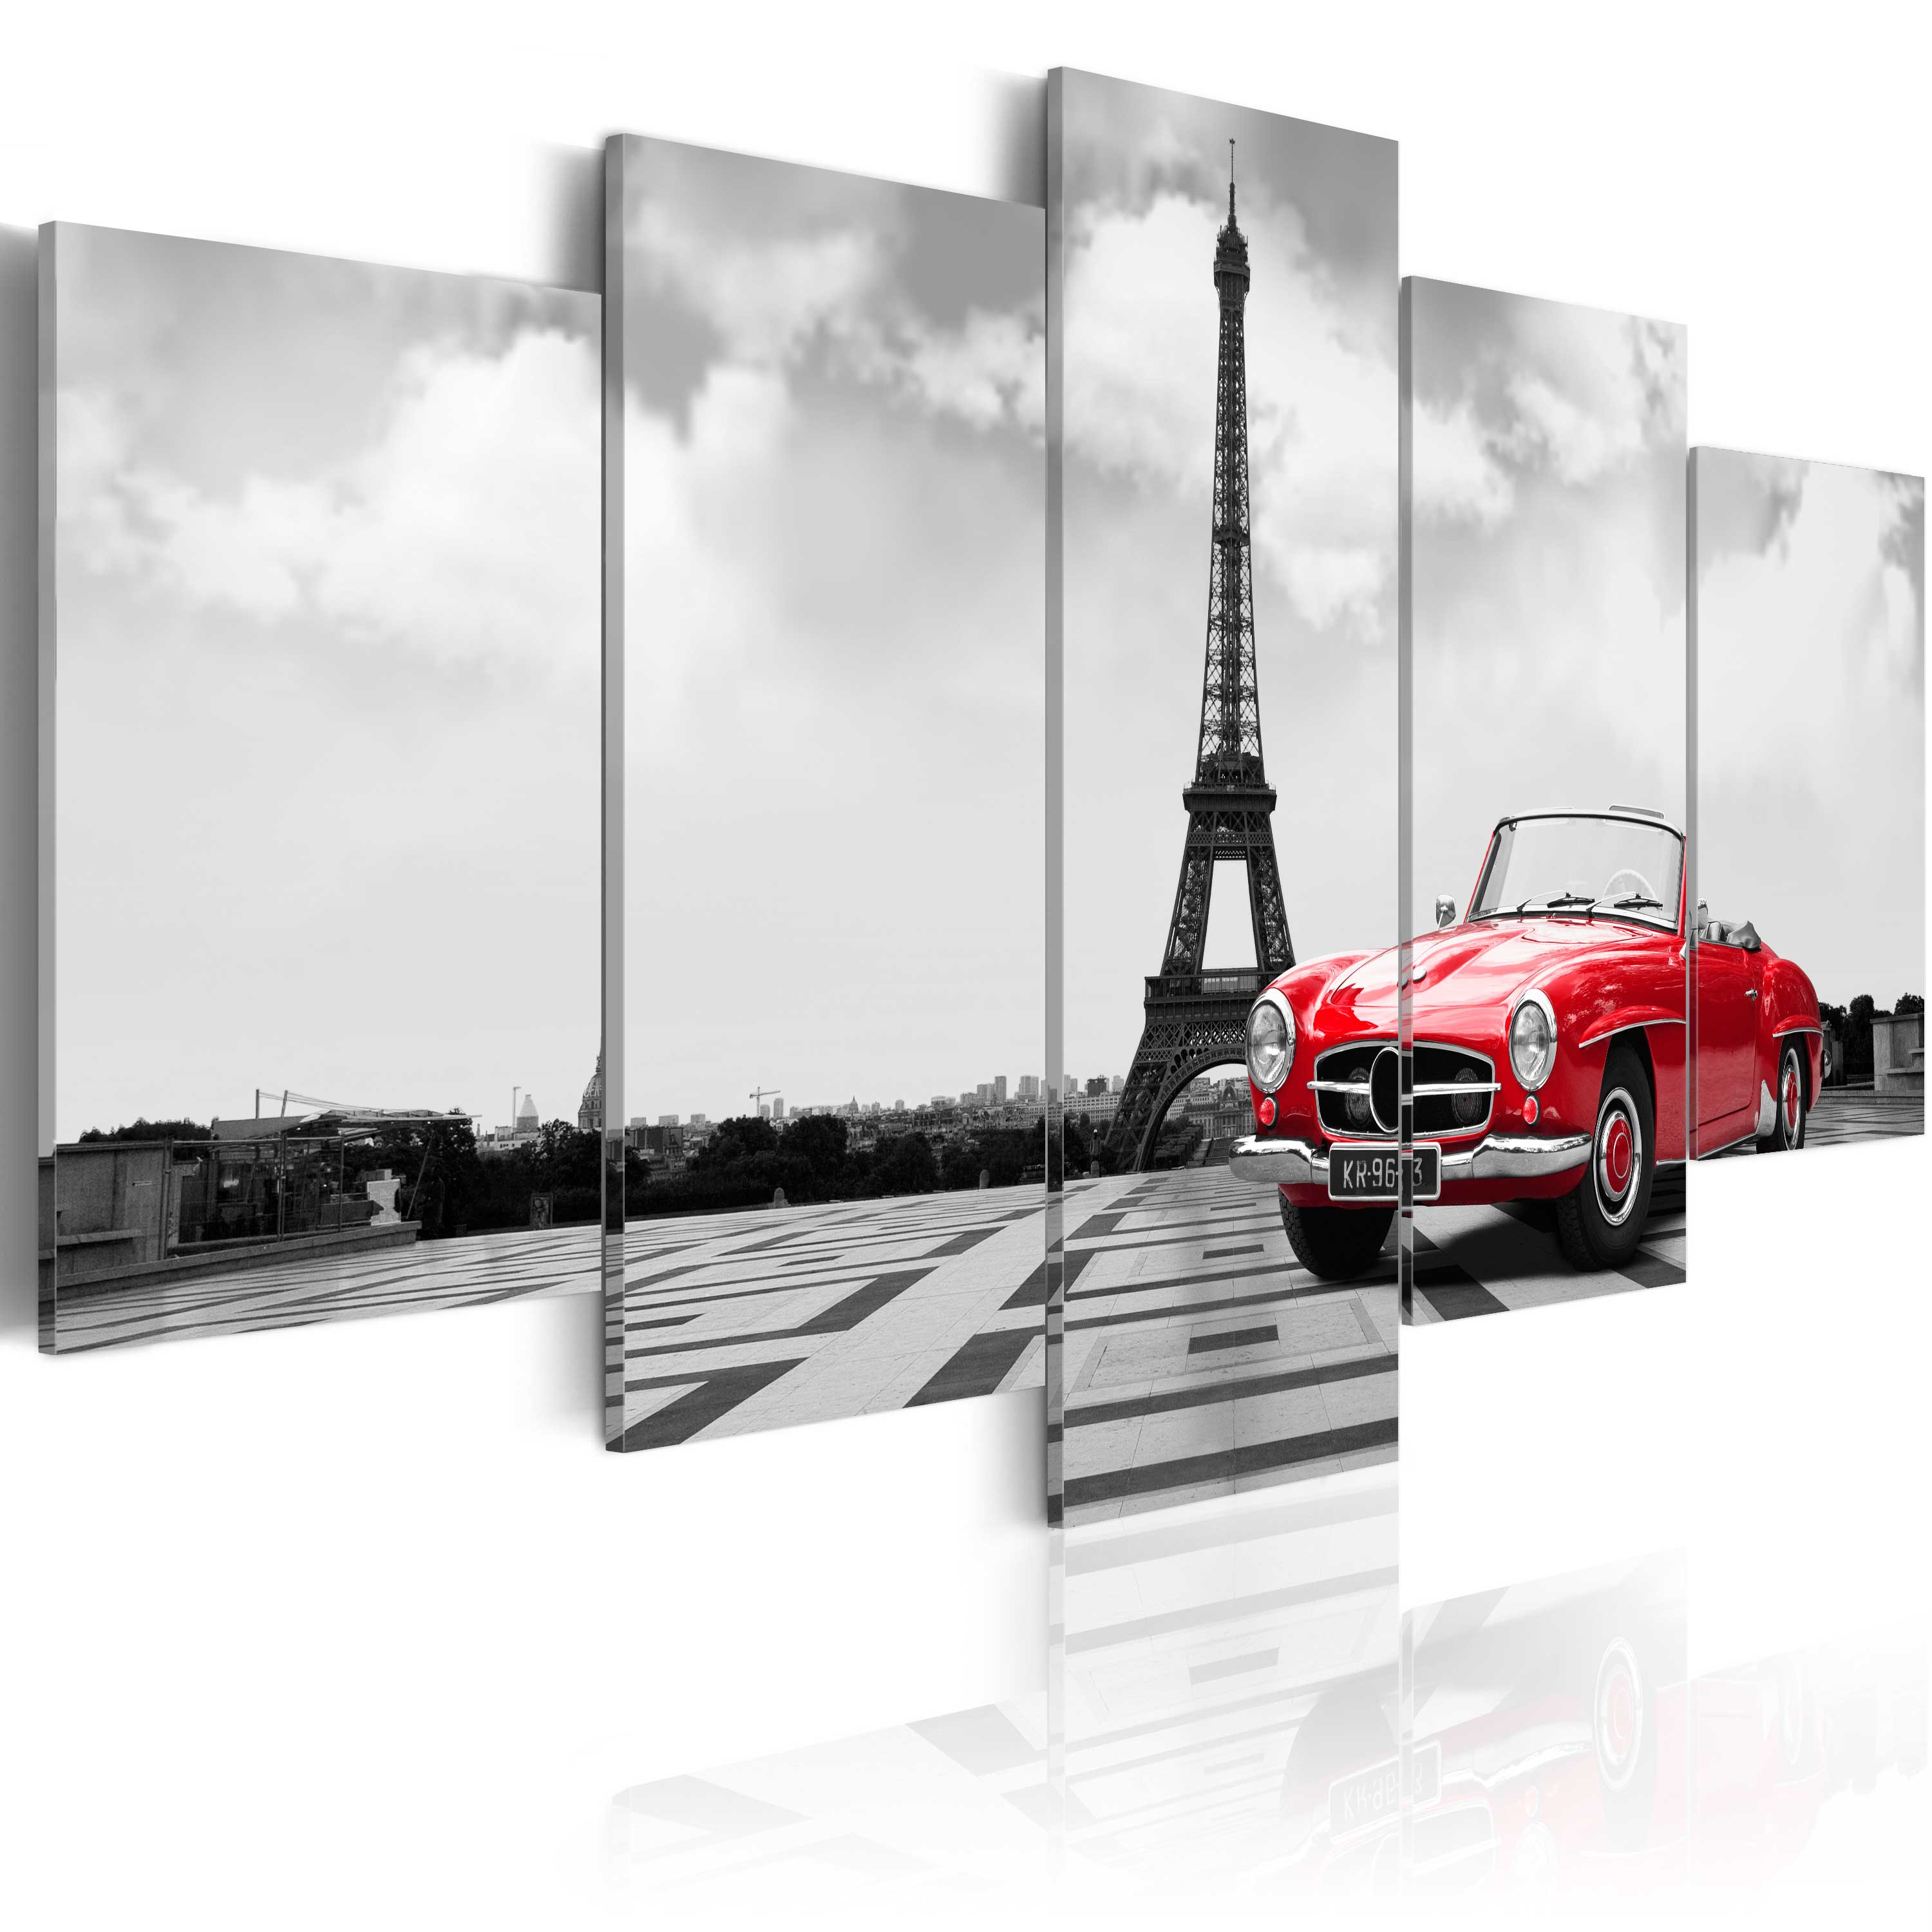 leinwand bilder xxl kunstdruck wandbild paris auto eifelturm grau rot 030106 11 ebay. Black Bedroom Furniture Sets. Home Design Ideas